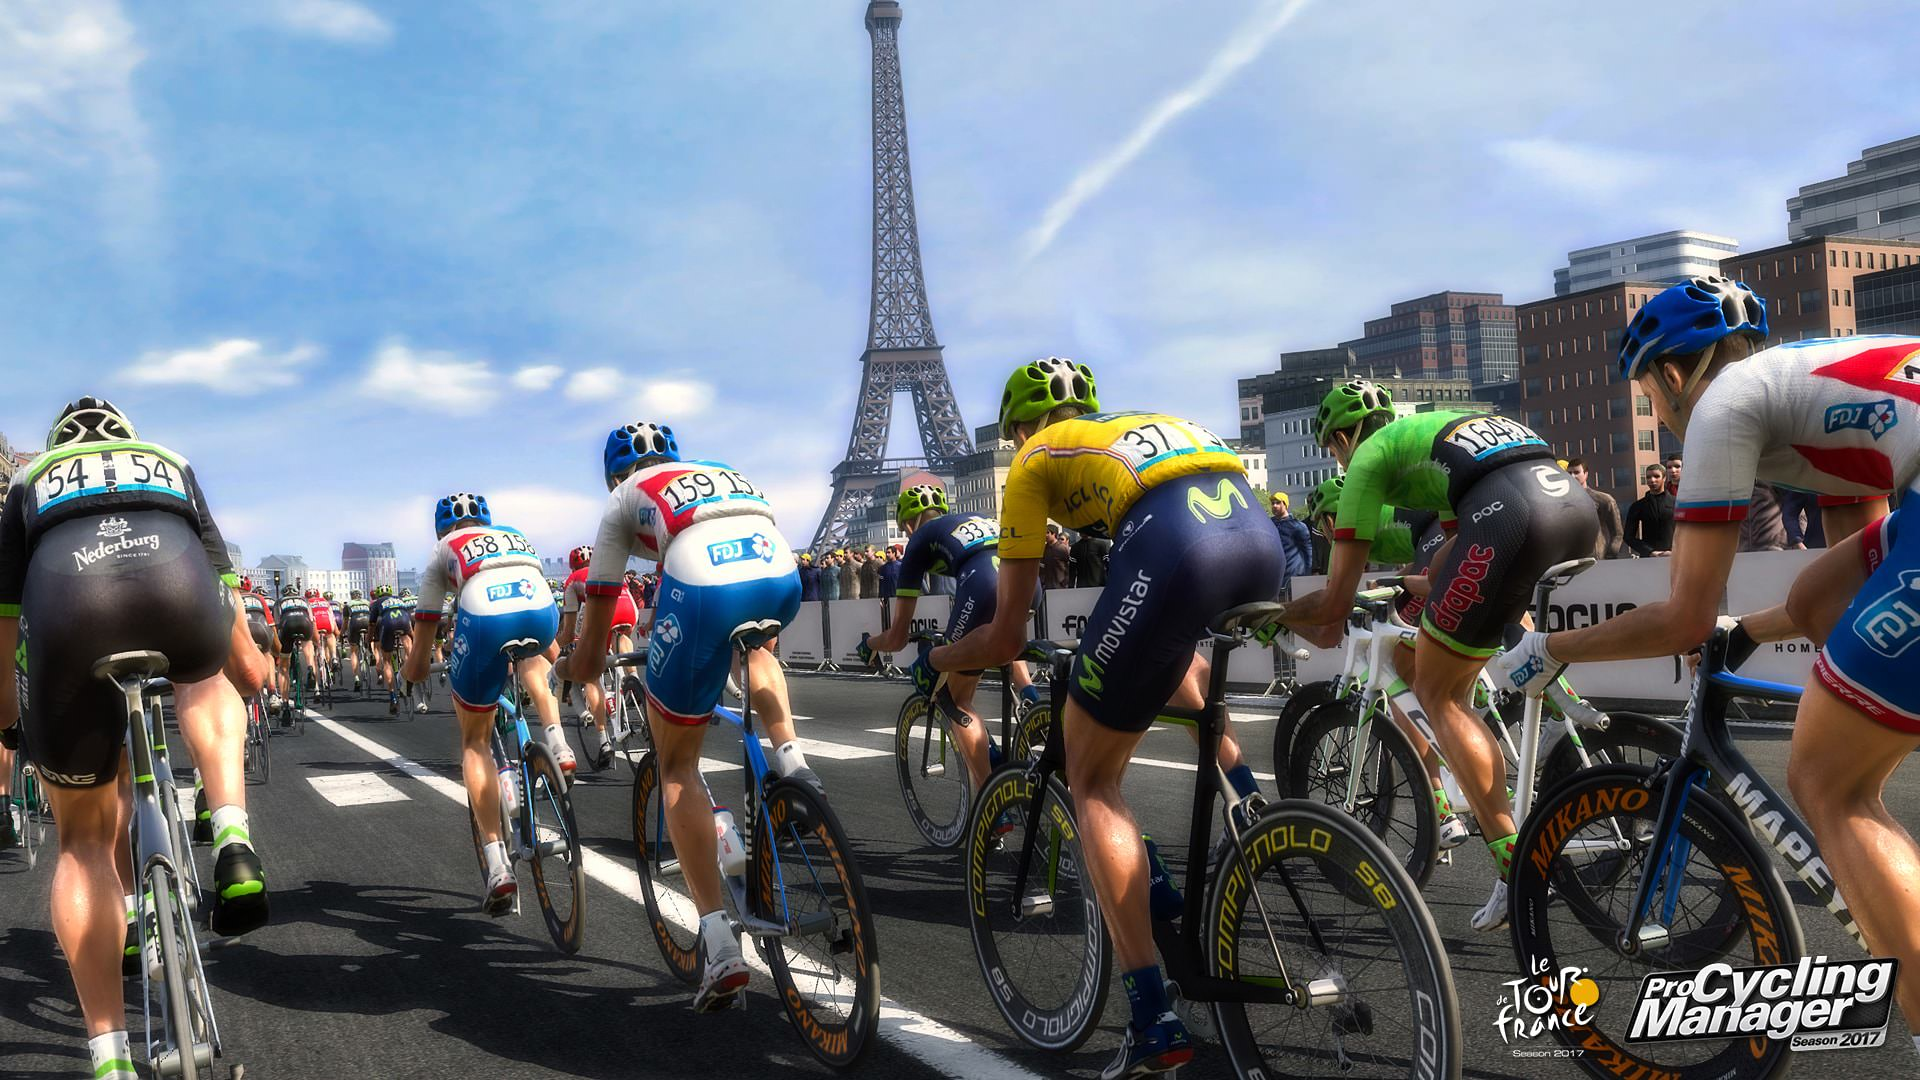 Tour de France | Euro Palace Casino Blog